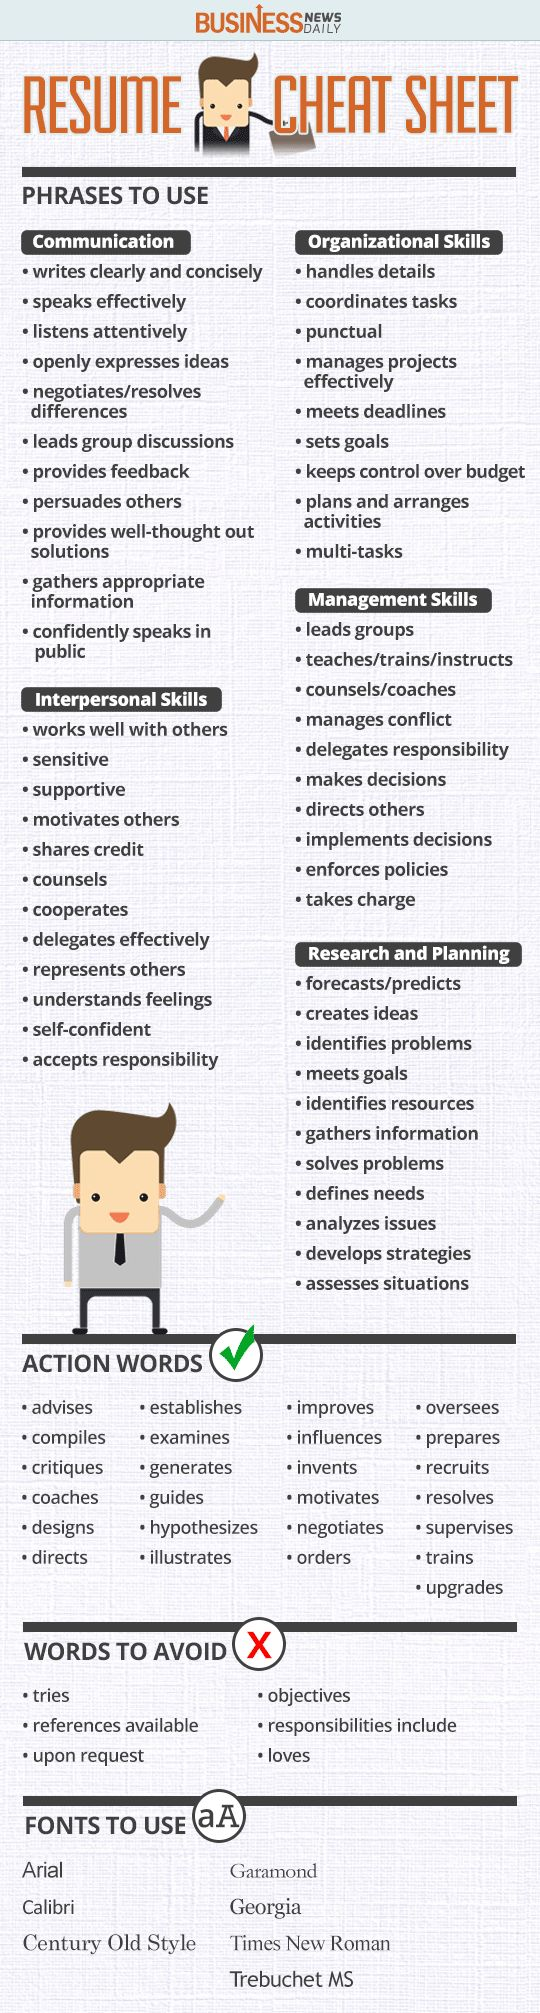 Opposenewapstandardsus  Surprising  Ideas About Resume On Pinterest  Cv Format Resume Cv And  With Heavenly Resume Cheat Sheet Infographic Andrews Almost Done With A Complete Unit On Employment Which With Adorable Resume Examples For College Students Also Font Size For Resume In Addition Easy Resume And Best Resume Writing Service As Well As Graduate School Resume Additionally Usajobs Resume Builder From Pinterestcom With Opposenewapstandardsus  Heavenly  Ideas About Resume On Pinterest  Cv Format Resume Cv And  With Adorable Resume Cheat Sheet Infographic Andrews Almost Done With A Complete Unit On Employment Which And Surprising Resume Examples For College Students Also Font Size For Resume In Addition Easy Resume From Pinterestcom